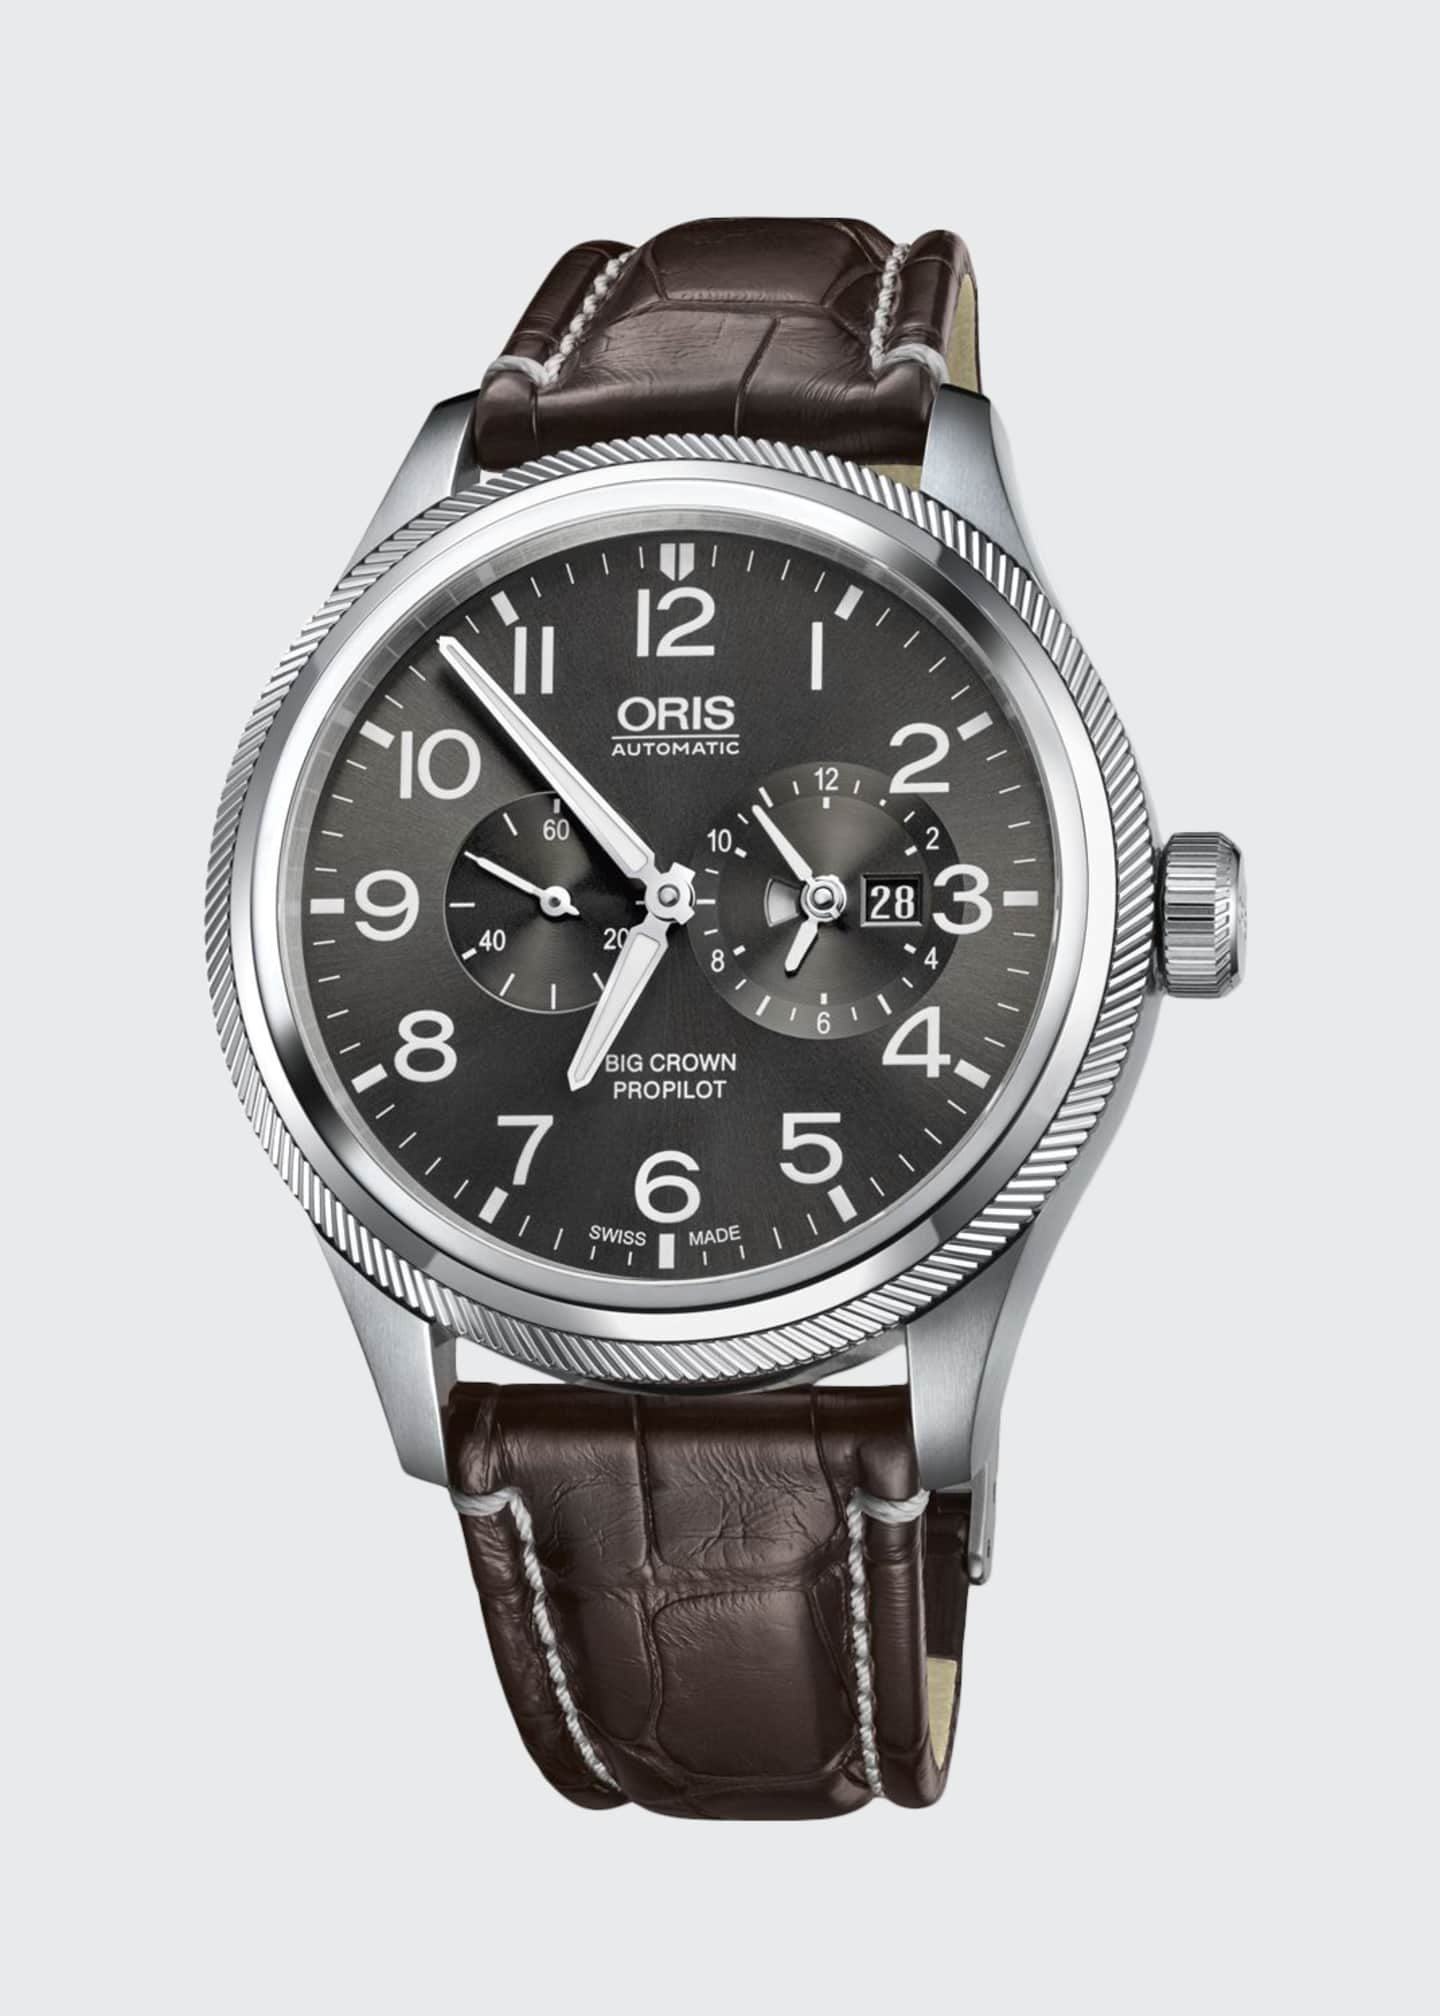 Oris Men's 44.7mm Big Crown Propilot Worldtimer Watch,